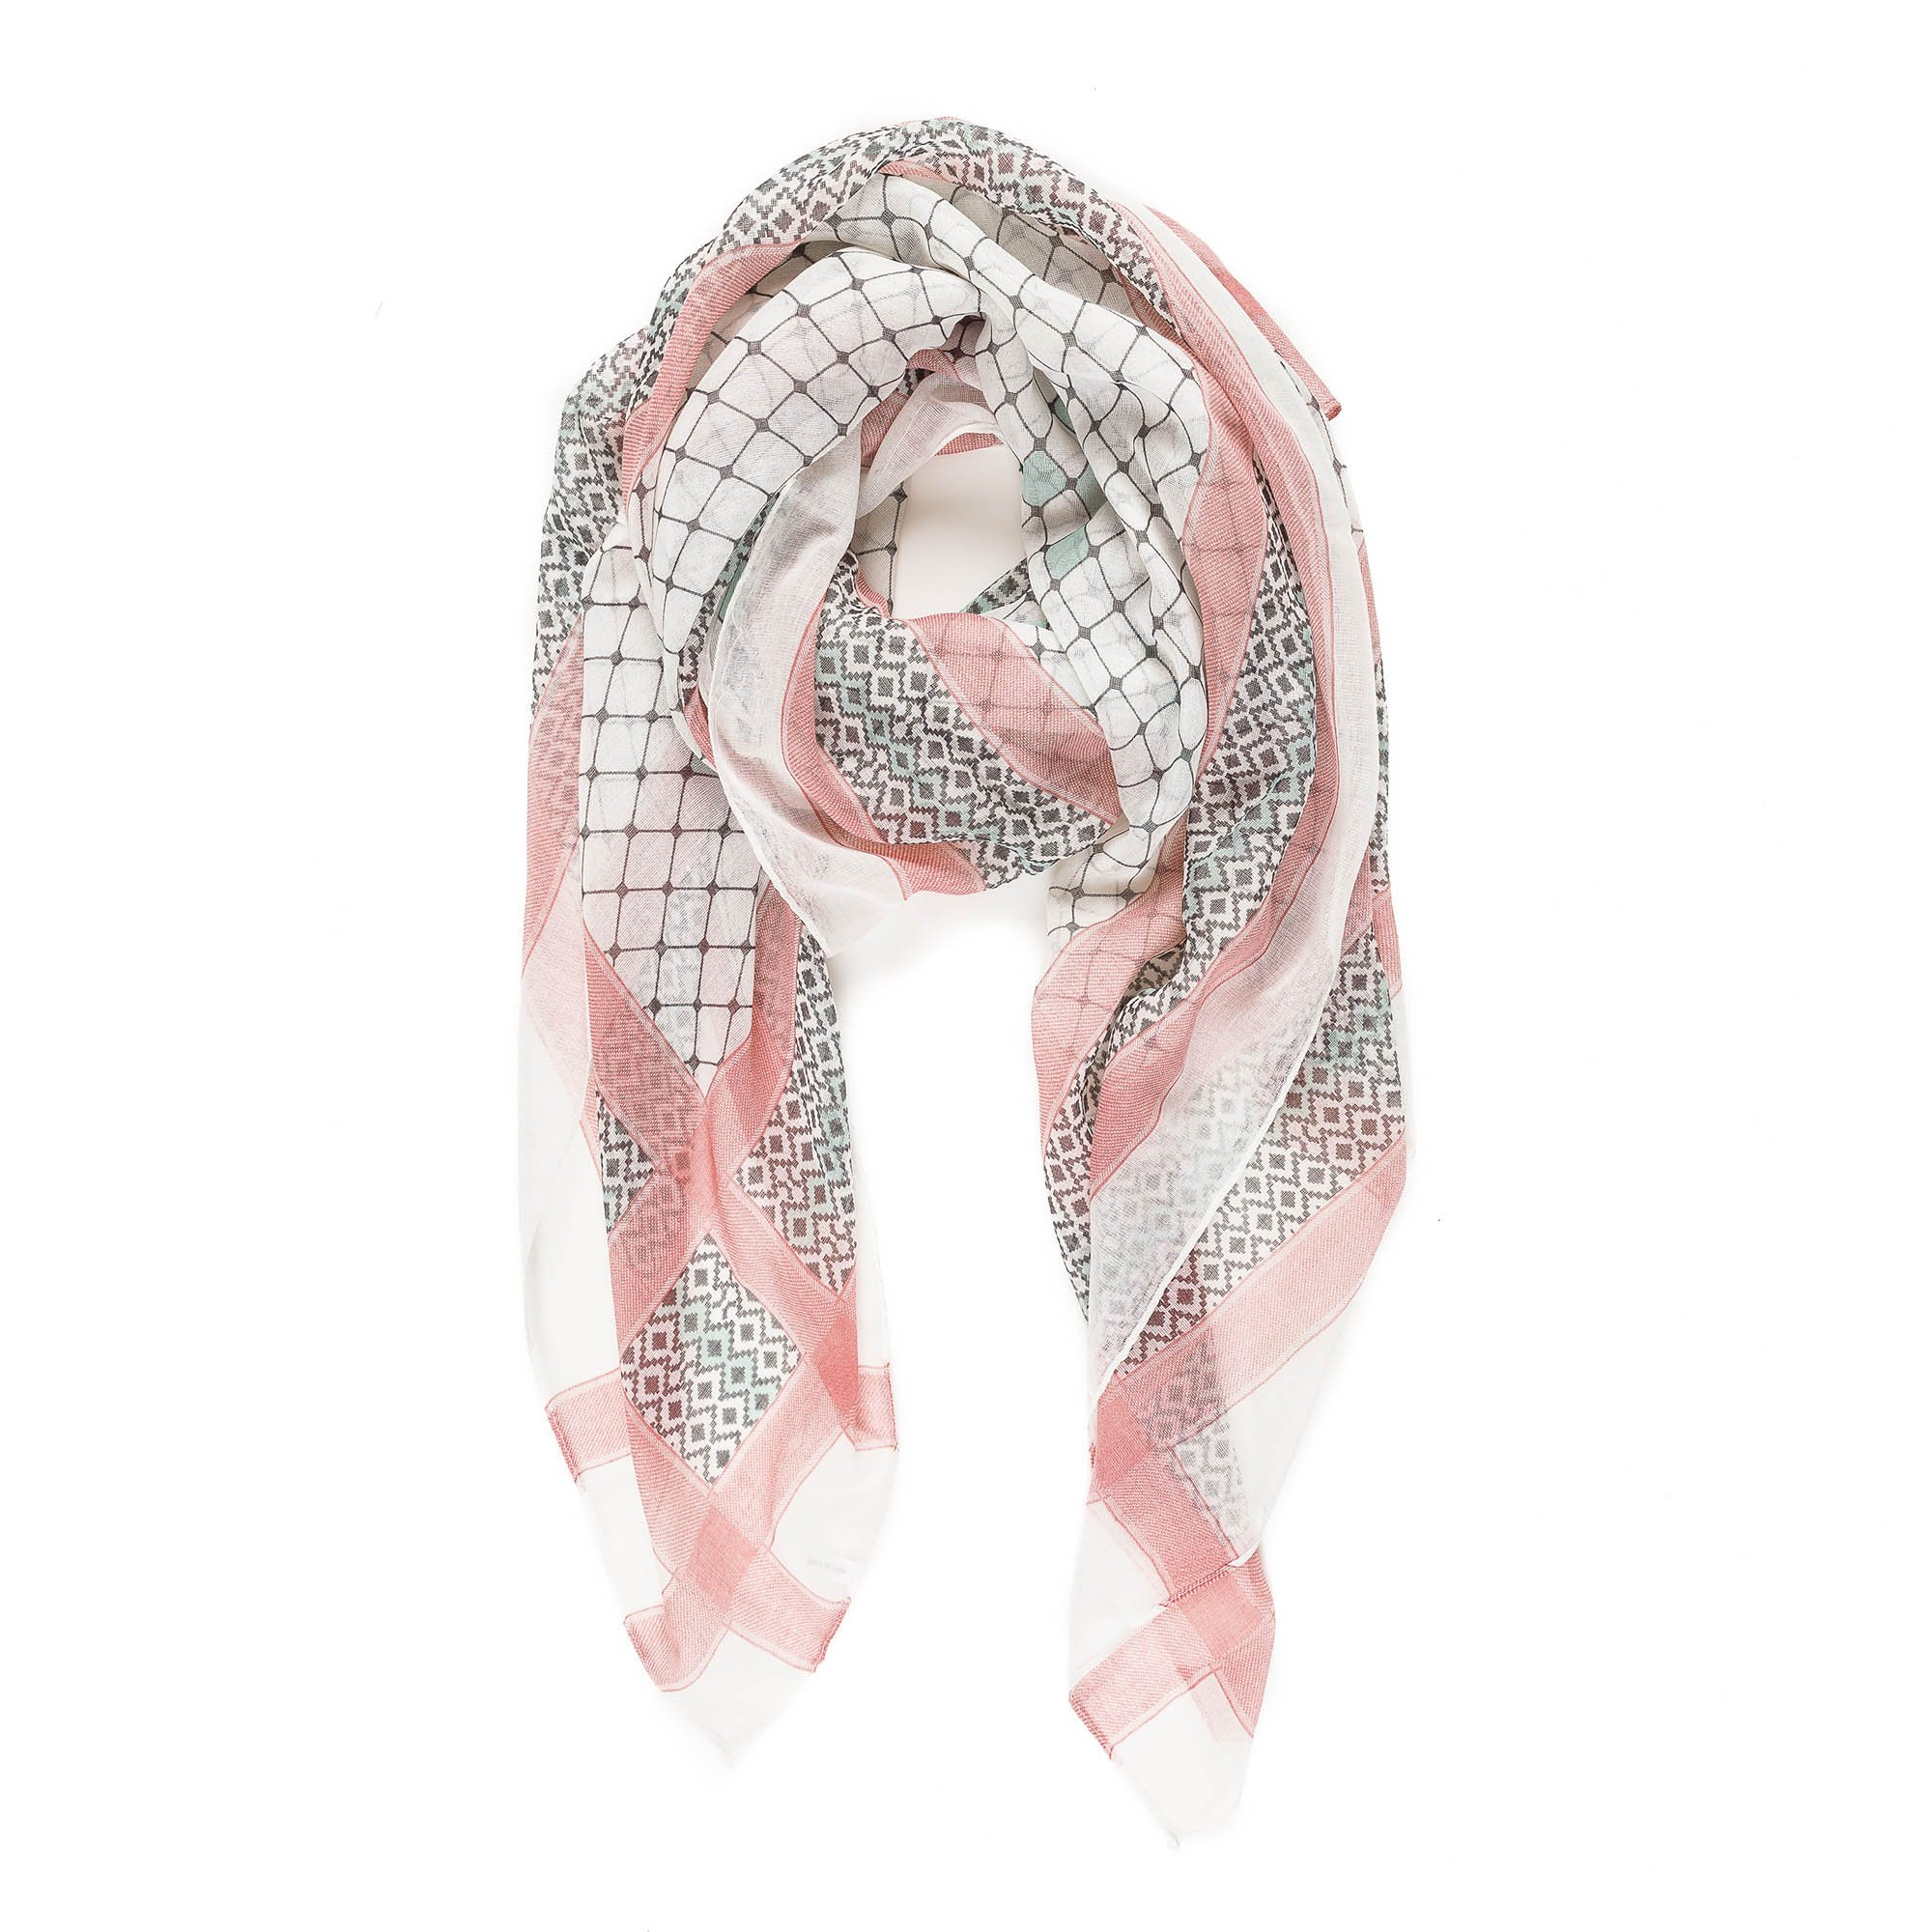 Scarf for Women Lightweight Fashion Fall Winter White Pink Geometric Scarves Shawl Wraps by Melifluos (F010-15)